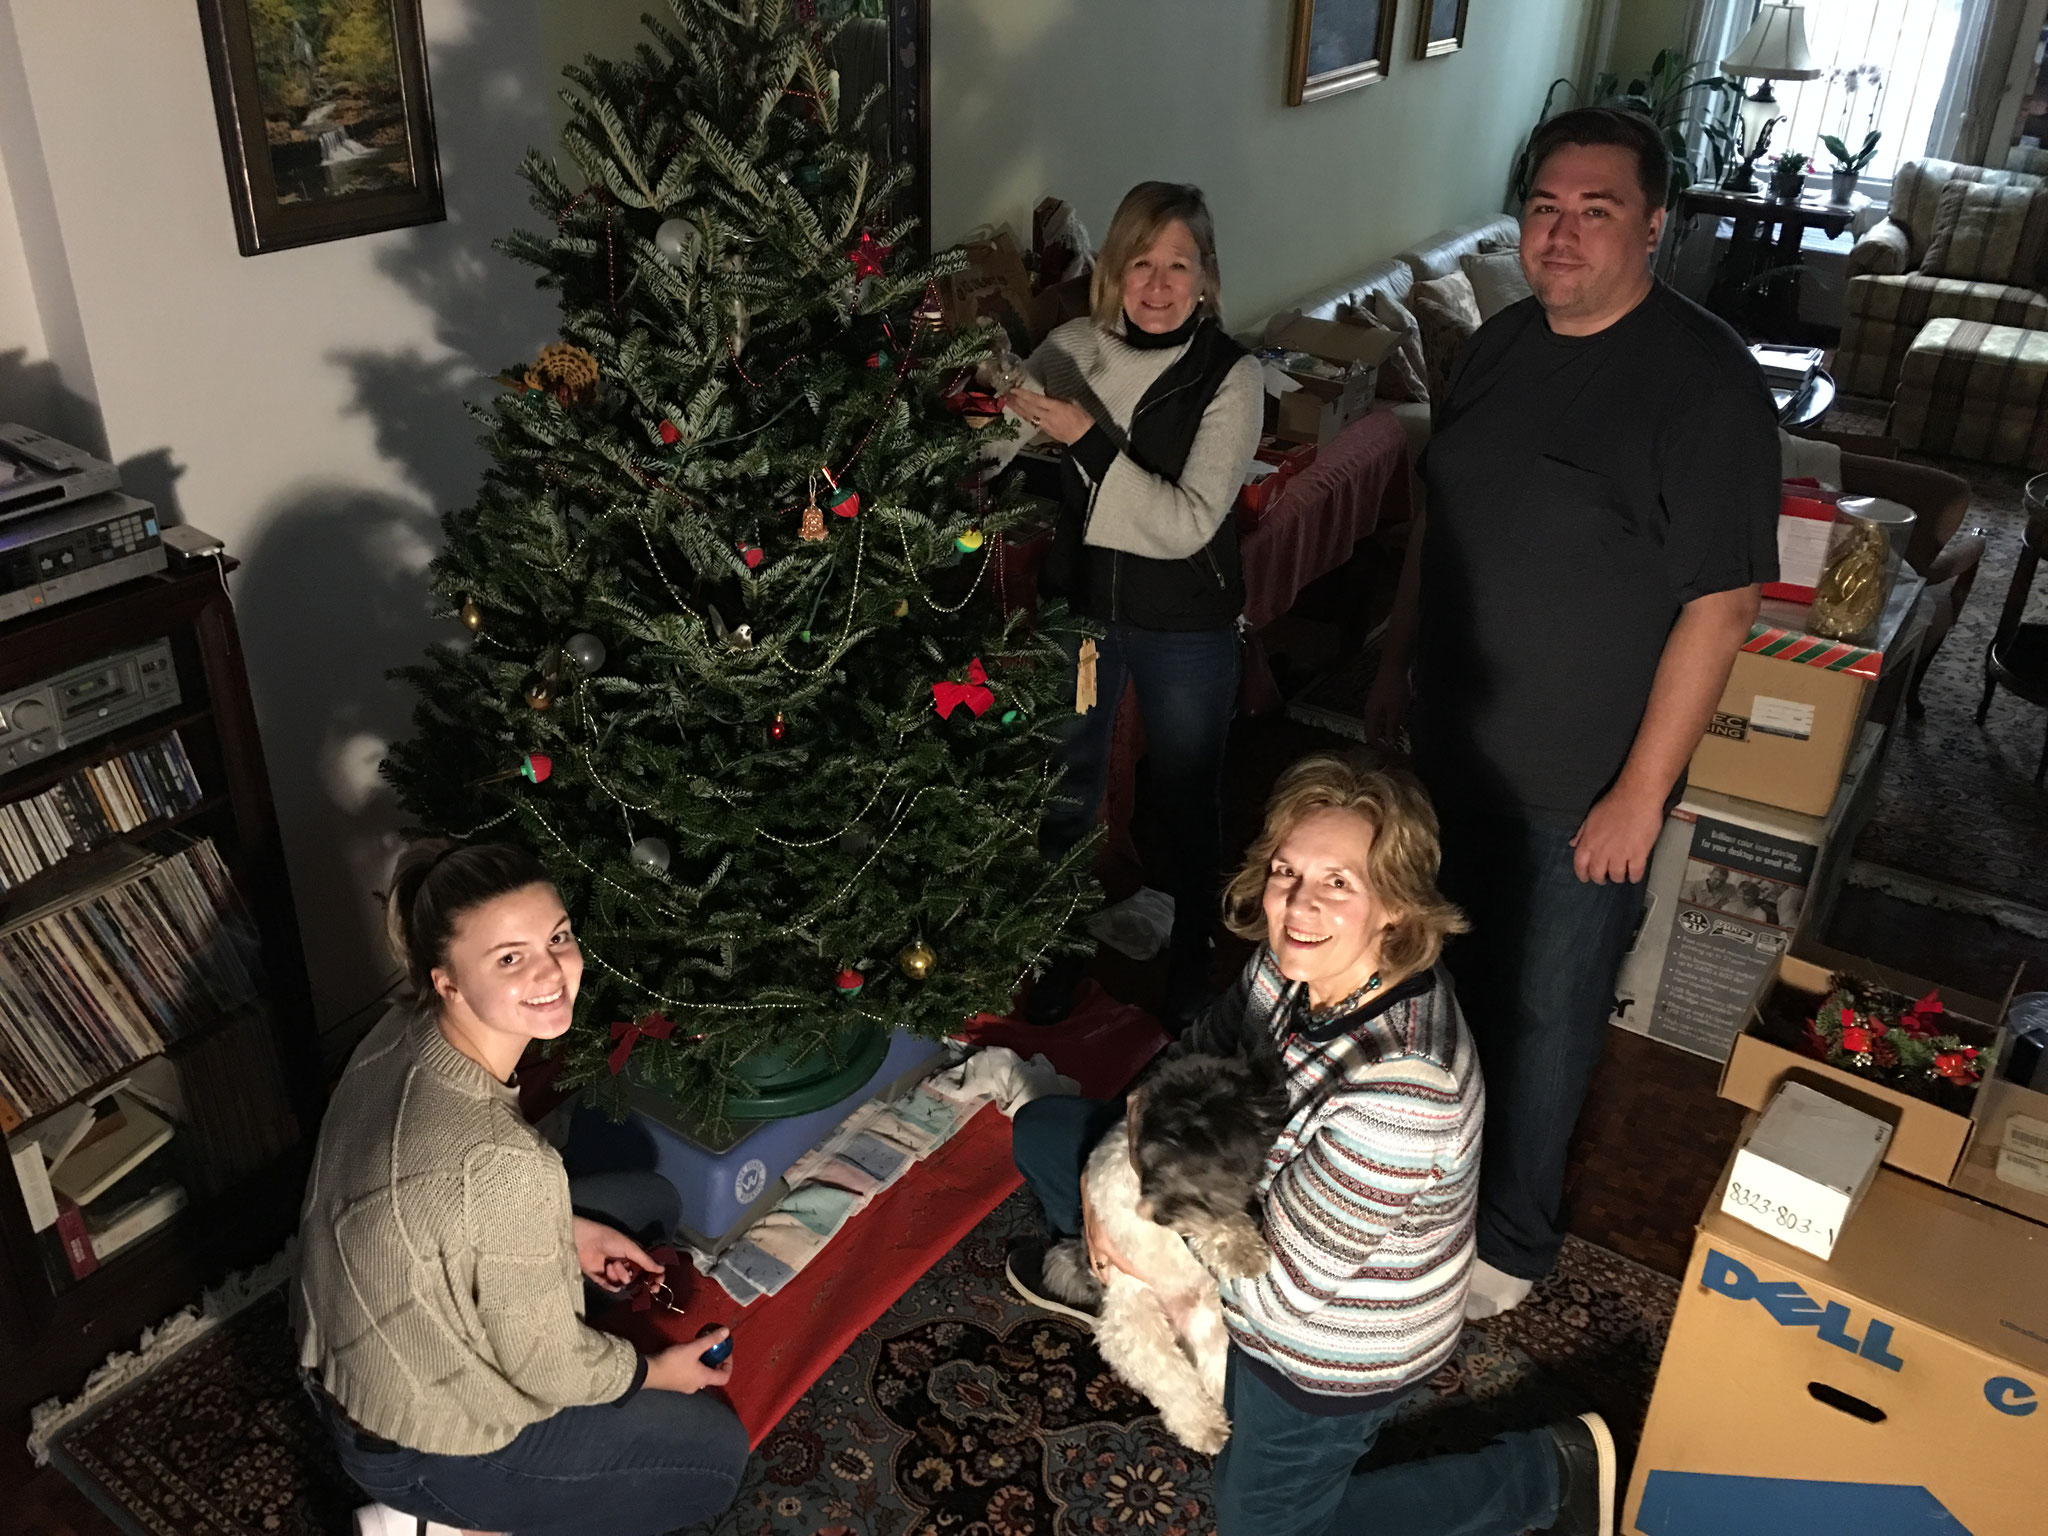 Kate, Sally, Greg & Lorraine decorate our Xmas tree, Dec. 2018